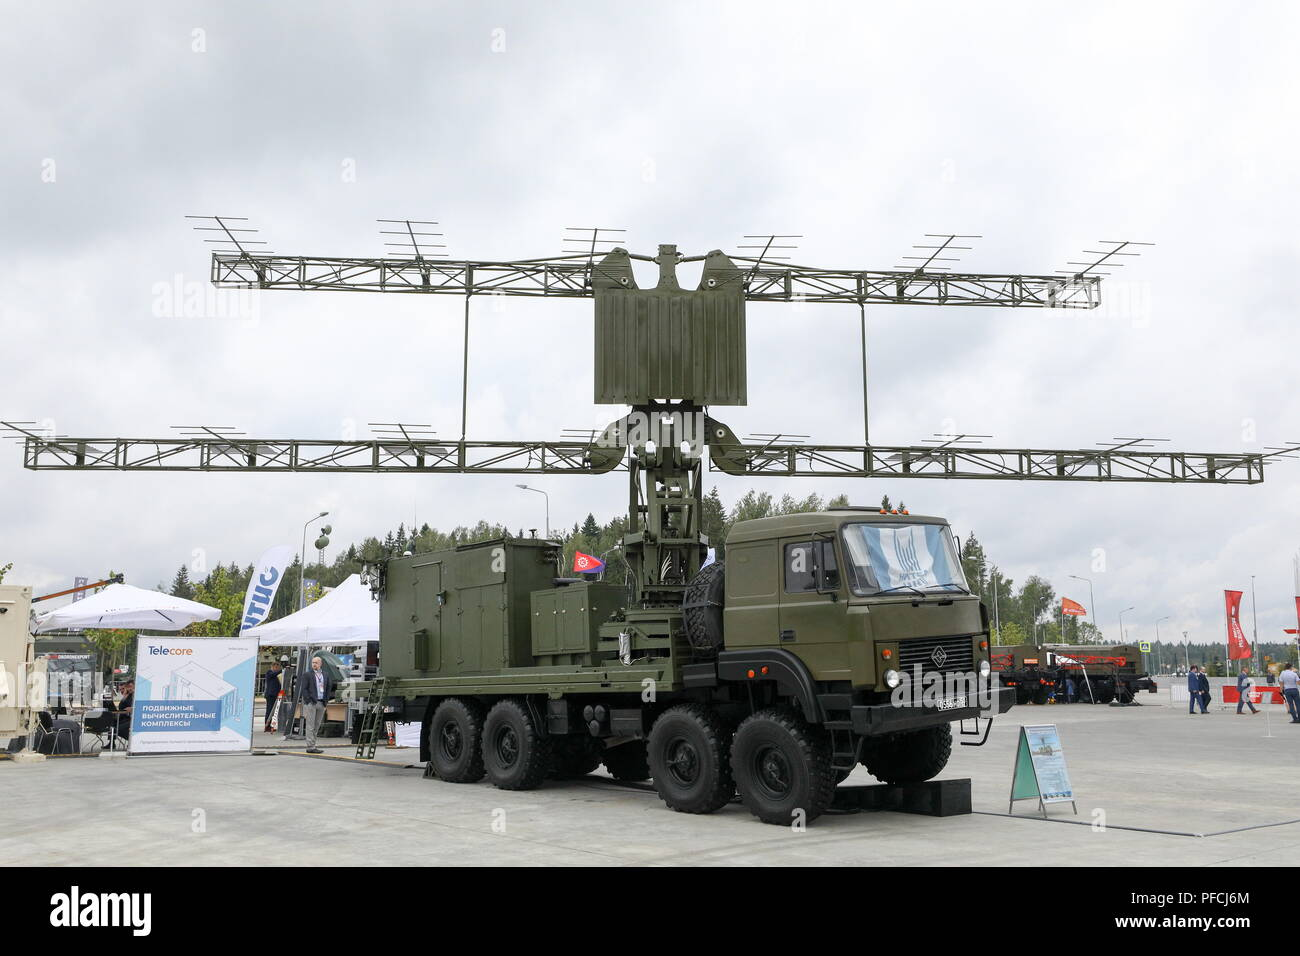 Russia. 21st Aug, 2018. MOSCOW REGION, RUSSIA - AUGUST 21, 2018: A P-18-2 mobile 2-dimensional metric band surveillance radar on display at the Army 2018 International Military and Technical Forum, in Patriot Park. Mikhail Tereshchenko/TASS Credit: ITAR-TASS News Agency/Alamy Live News - Stock Image